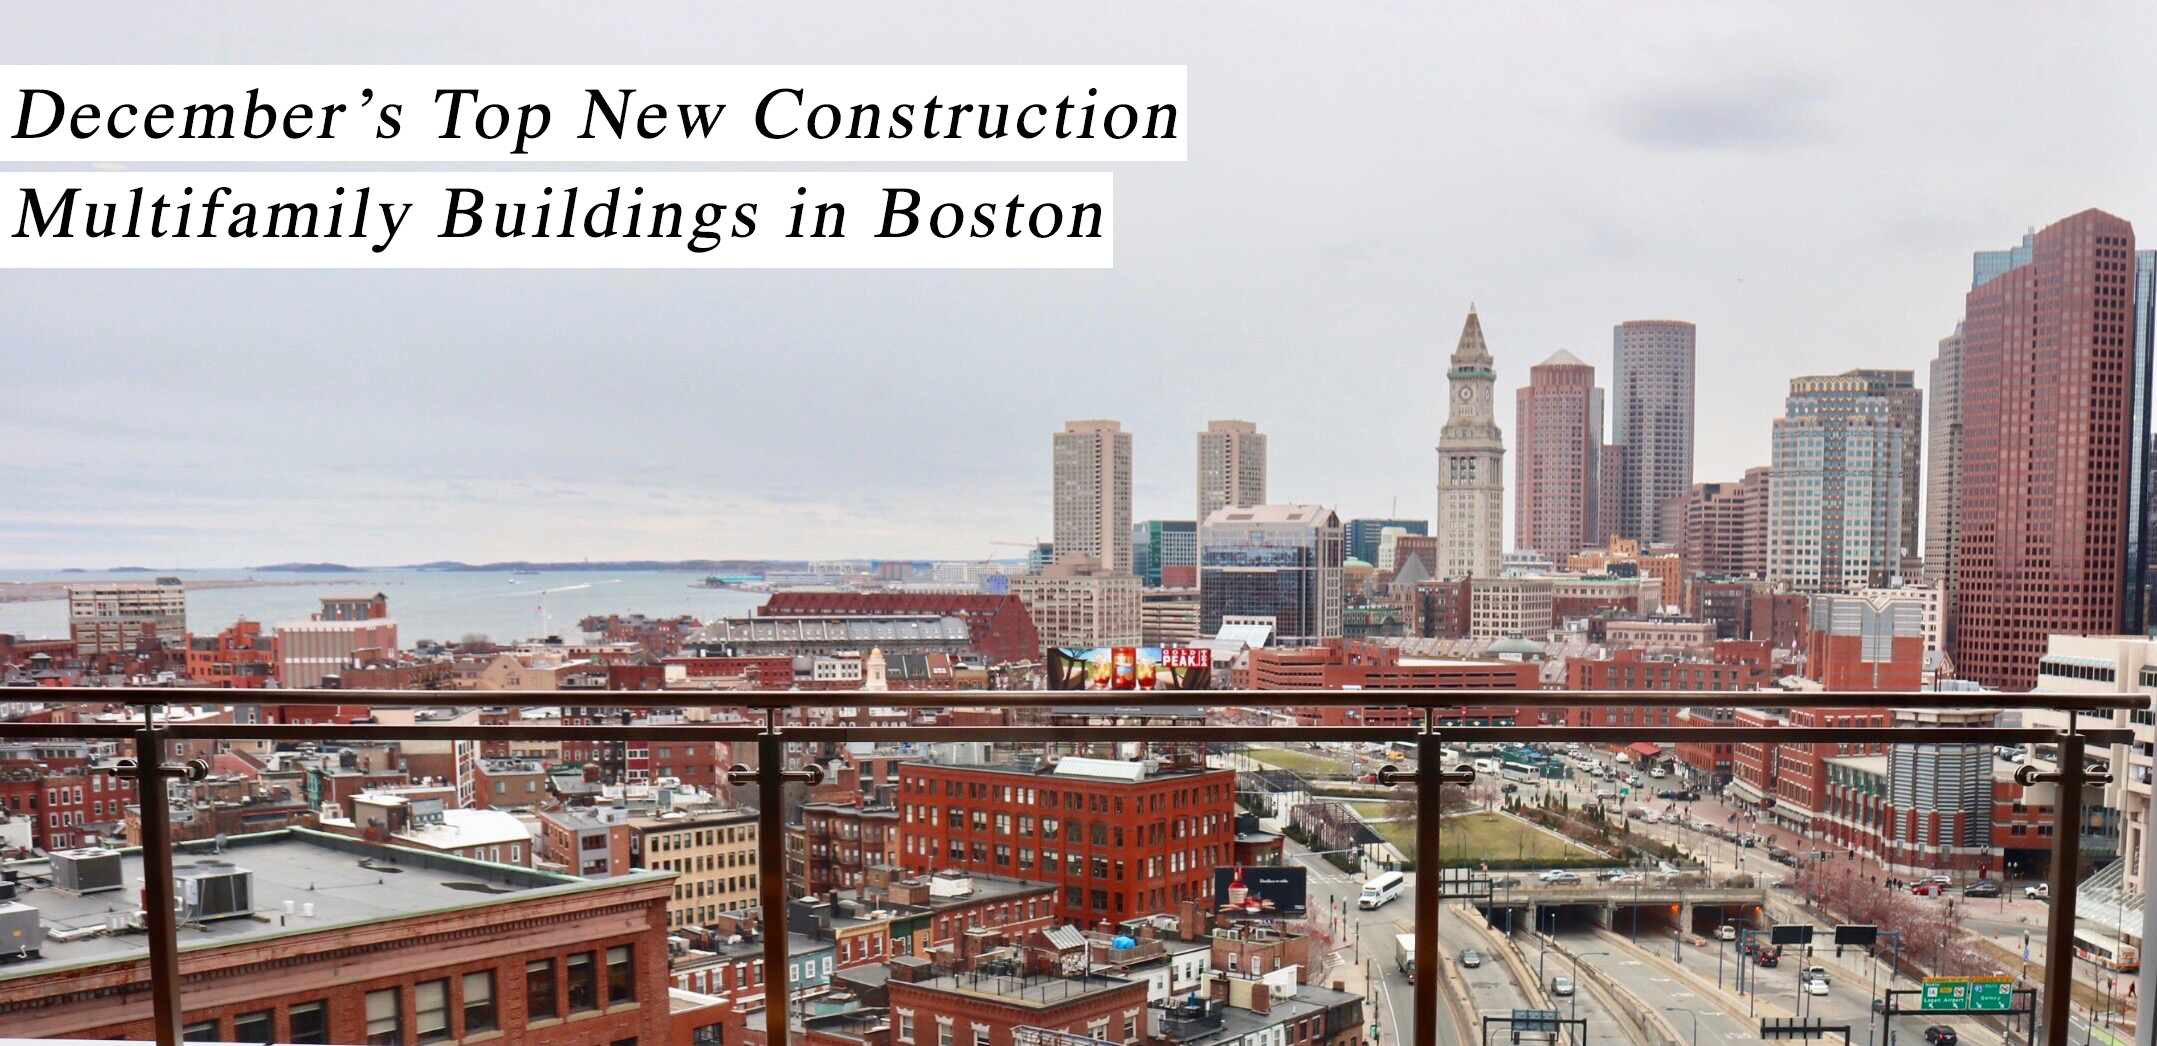 Decembers top new construction multifamily buildings